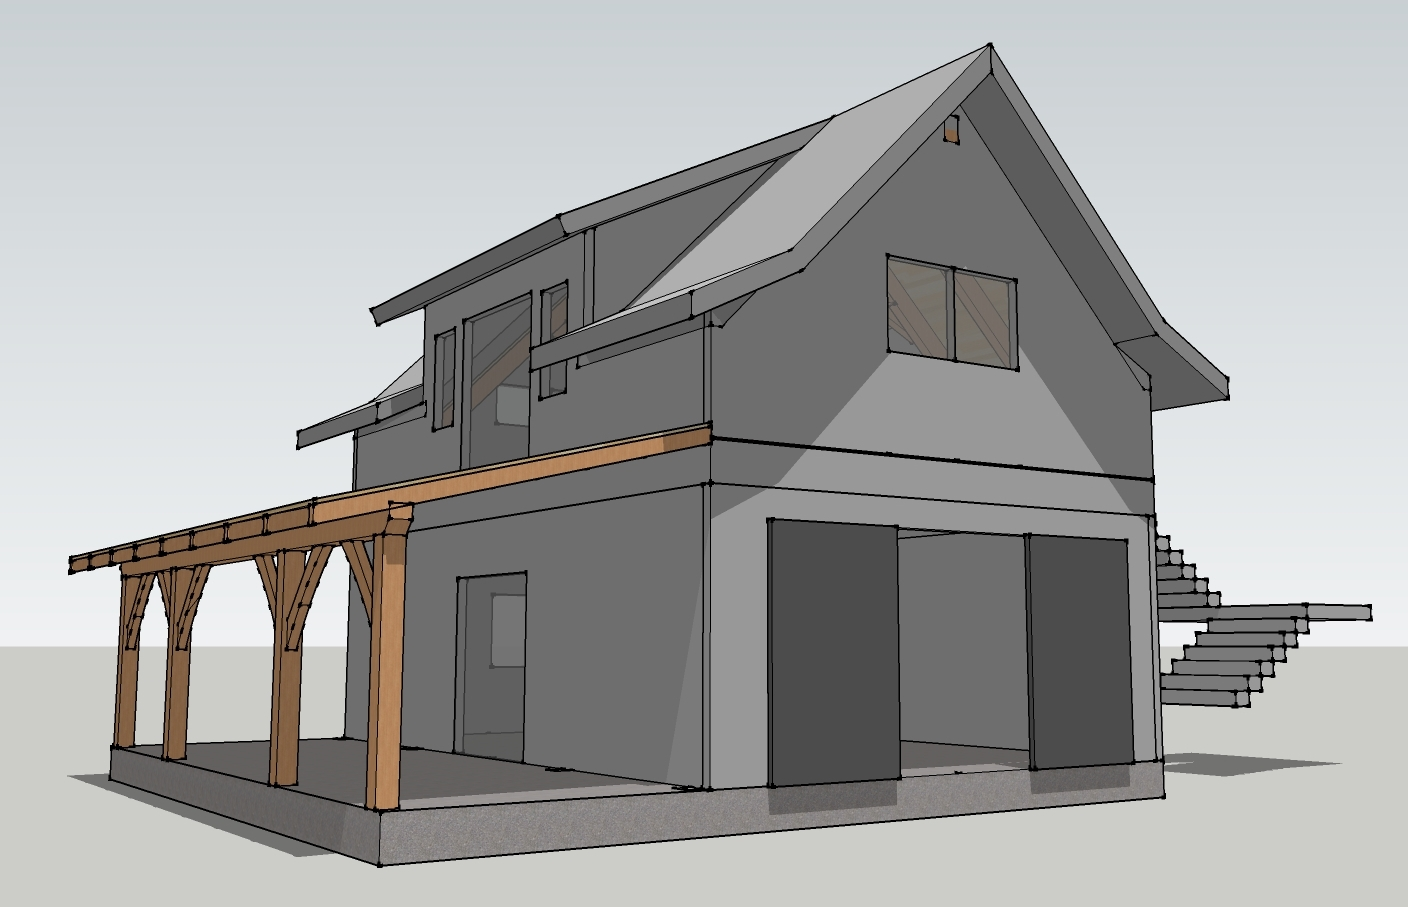 Timber frame garage plans timber frame cabin plans timber for Ranch timber frame plans